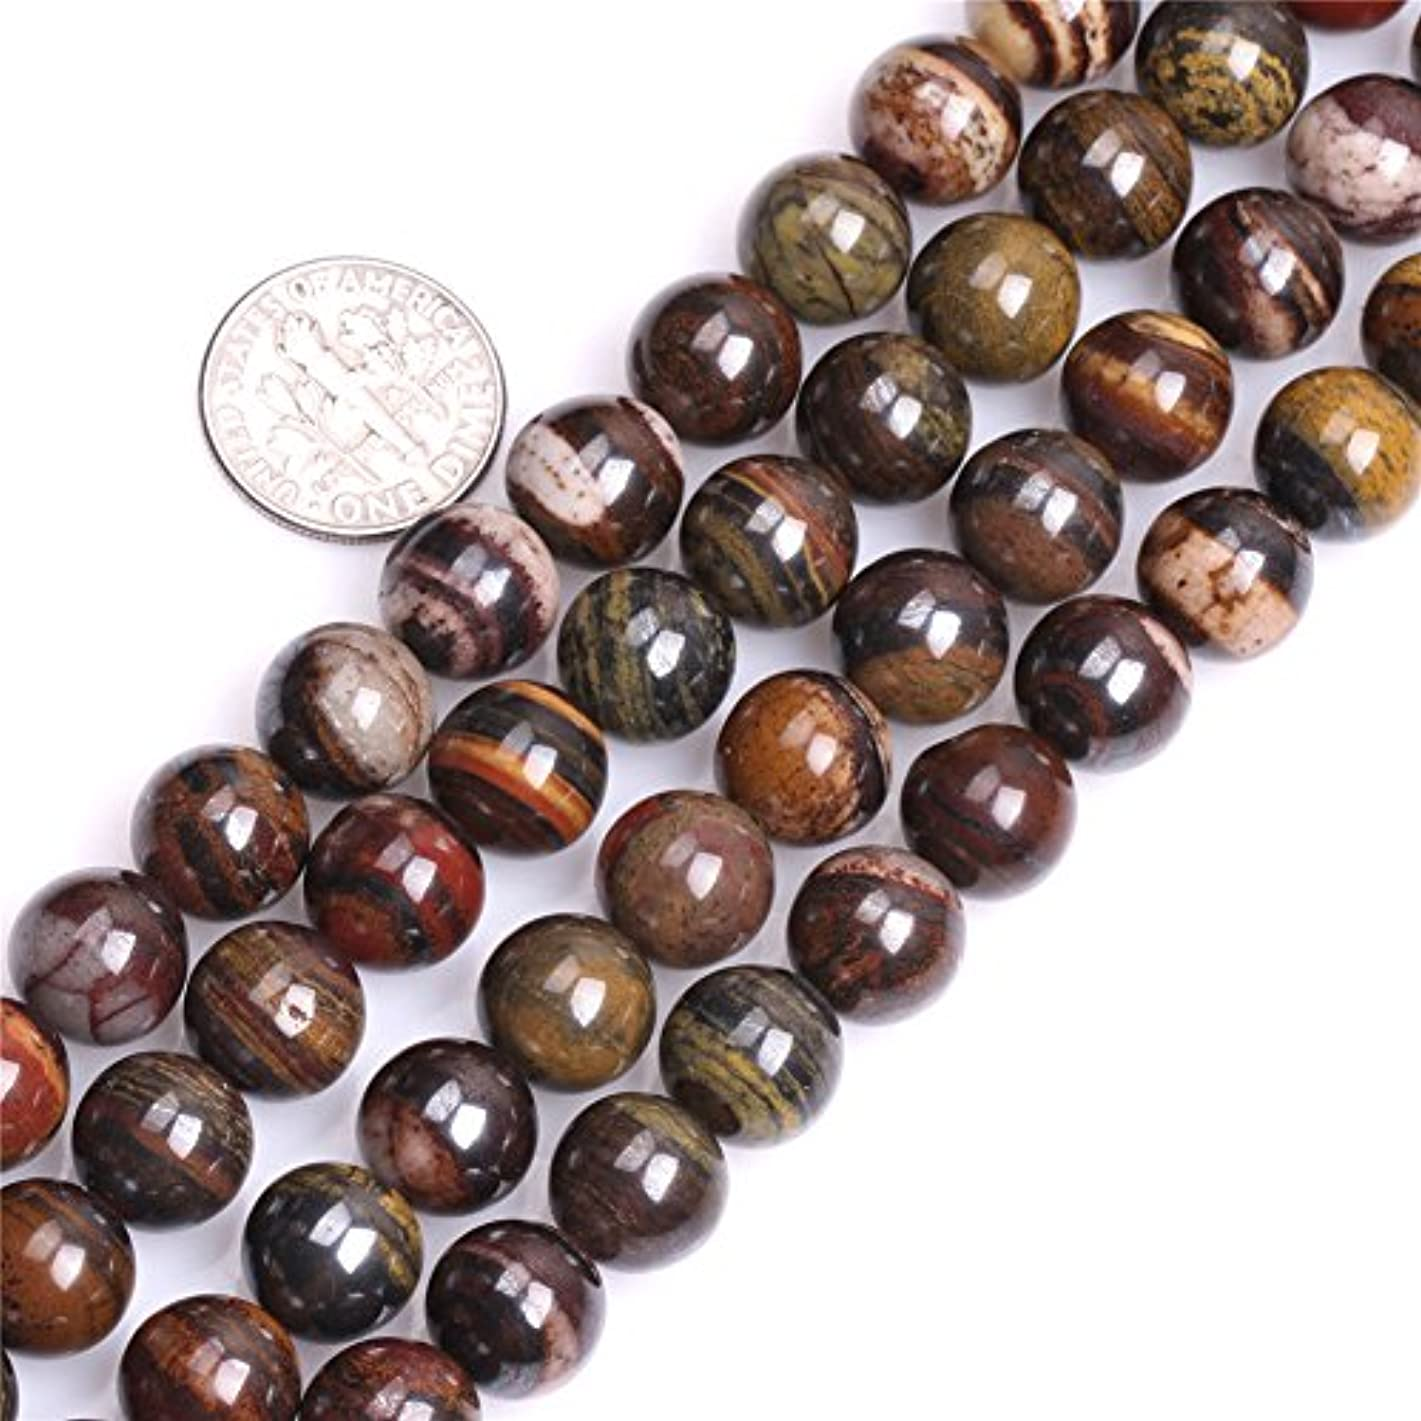 GEM-inside 10mm Natural Brown Sunset Tiger Iron Stone Gemstone Semi Precious Round Beads for Jewelry Making 15